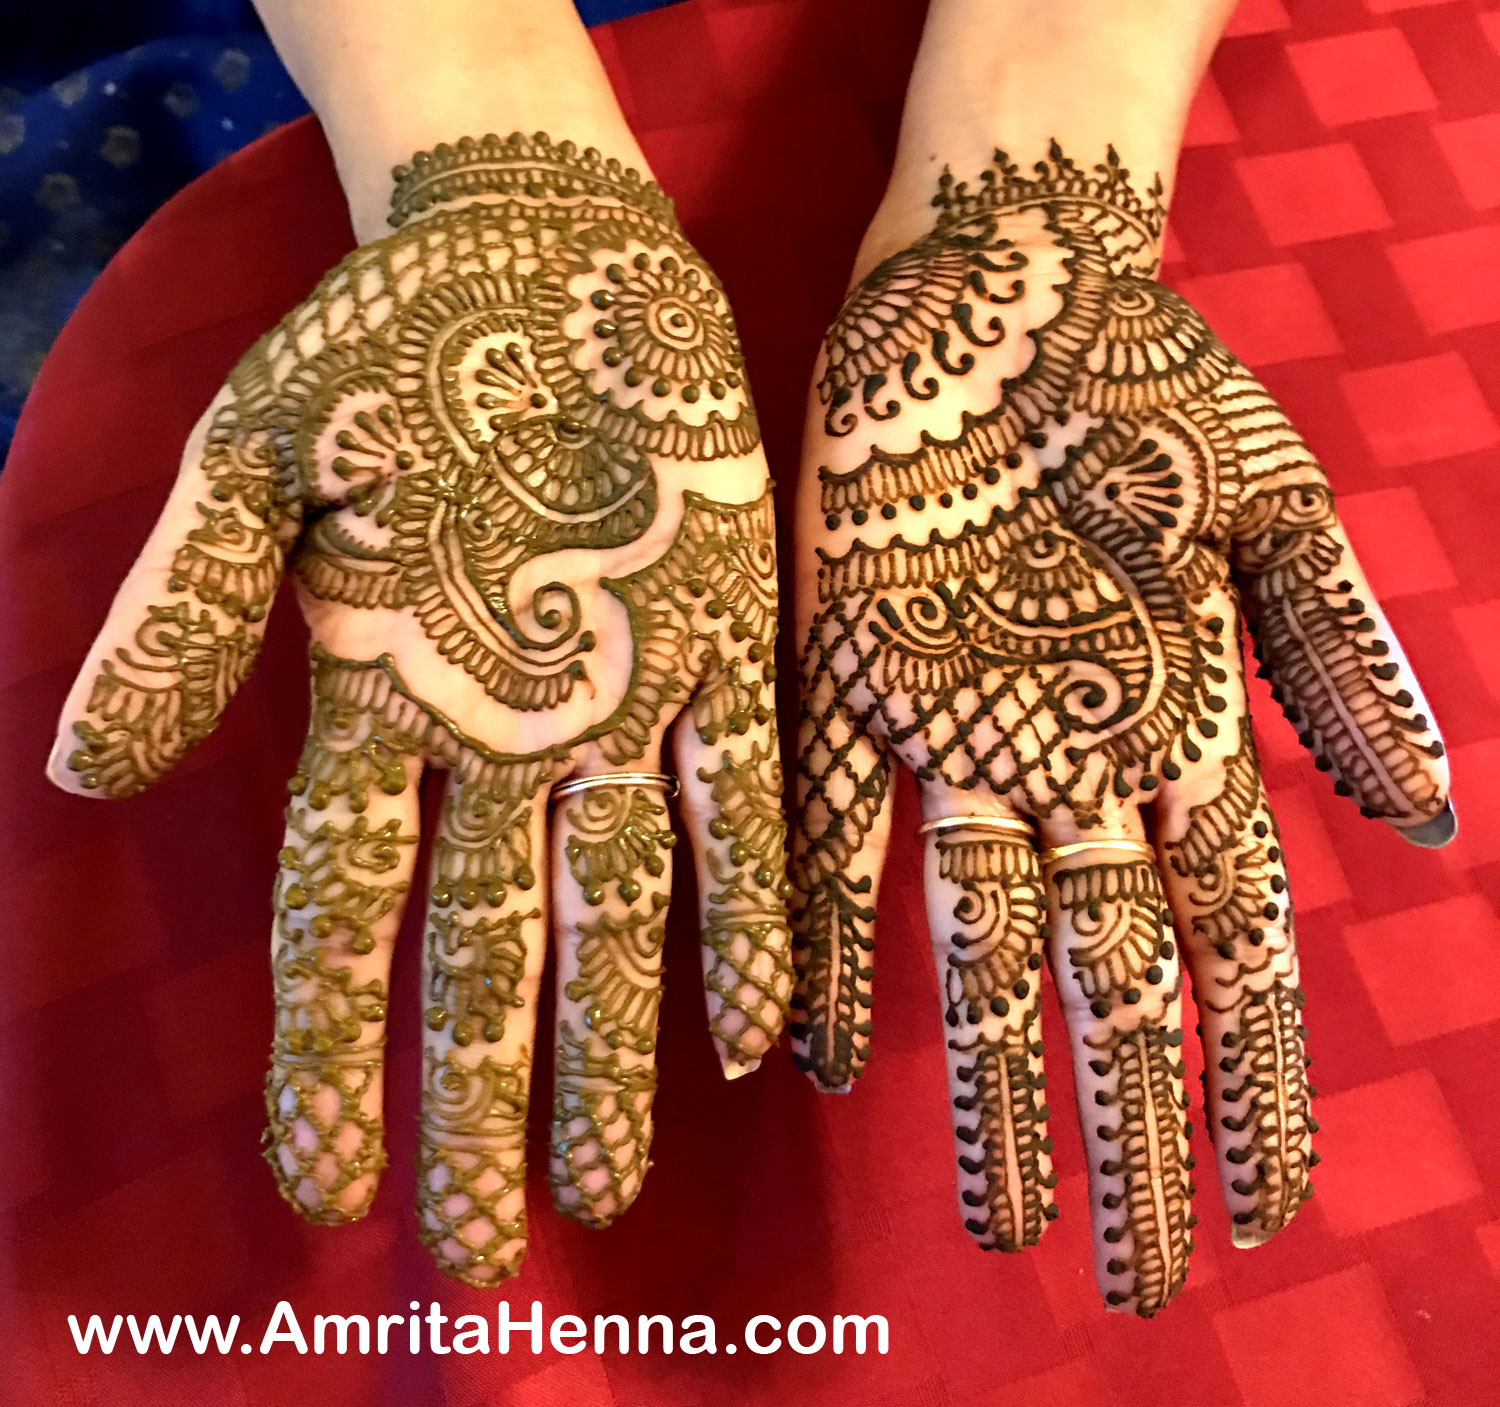 Mehndi Designs For Engagement : Top henna designs for your engagement ceremony